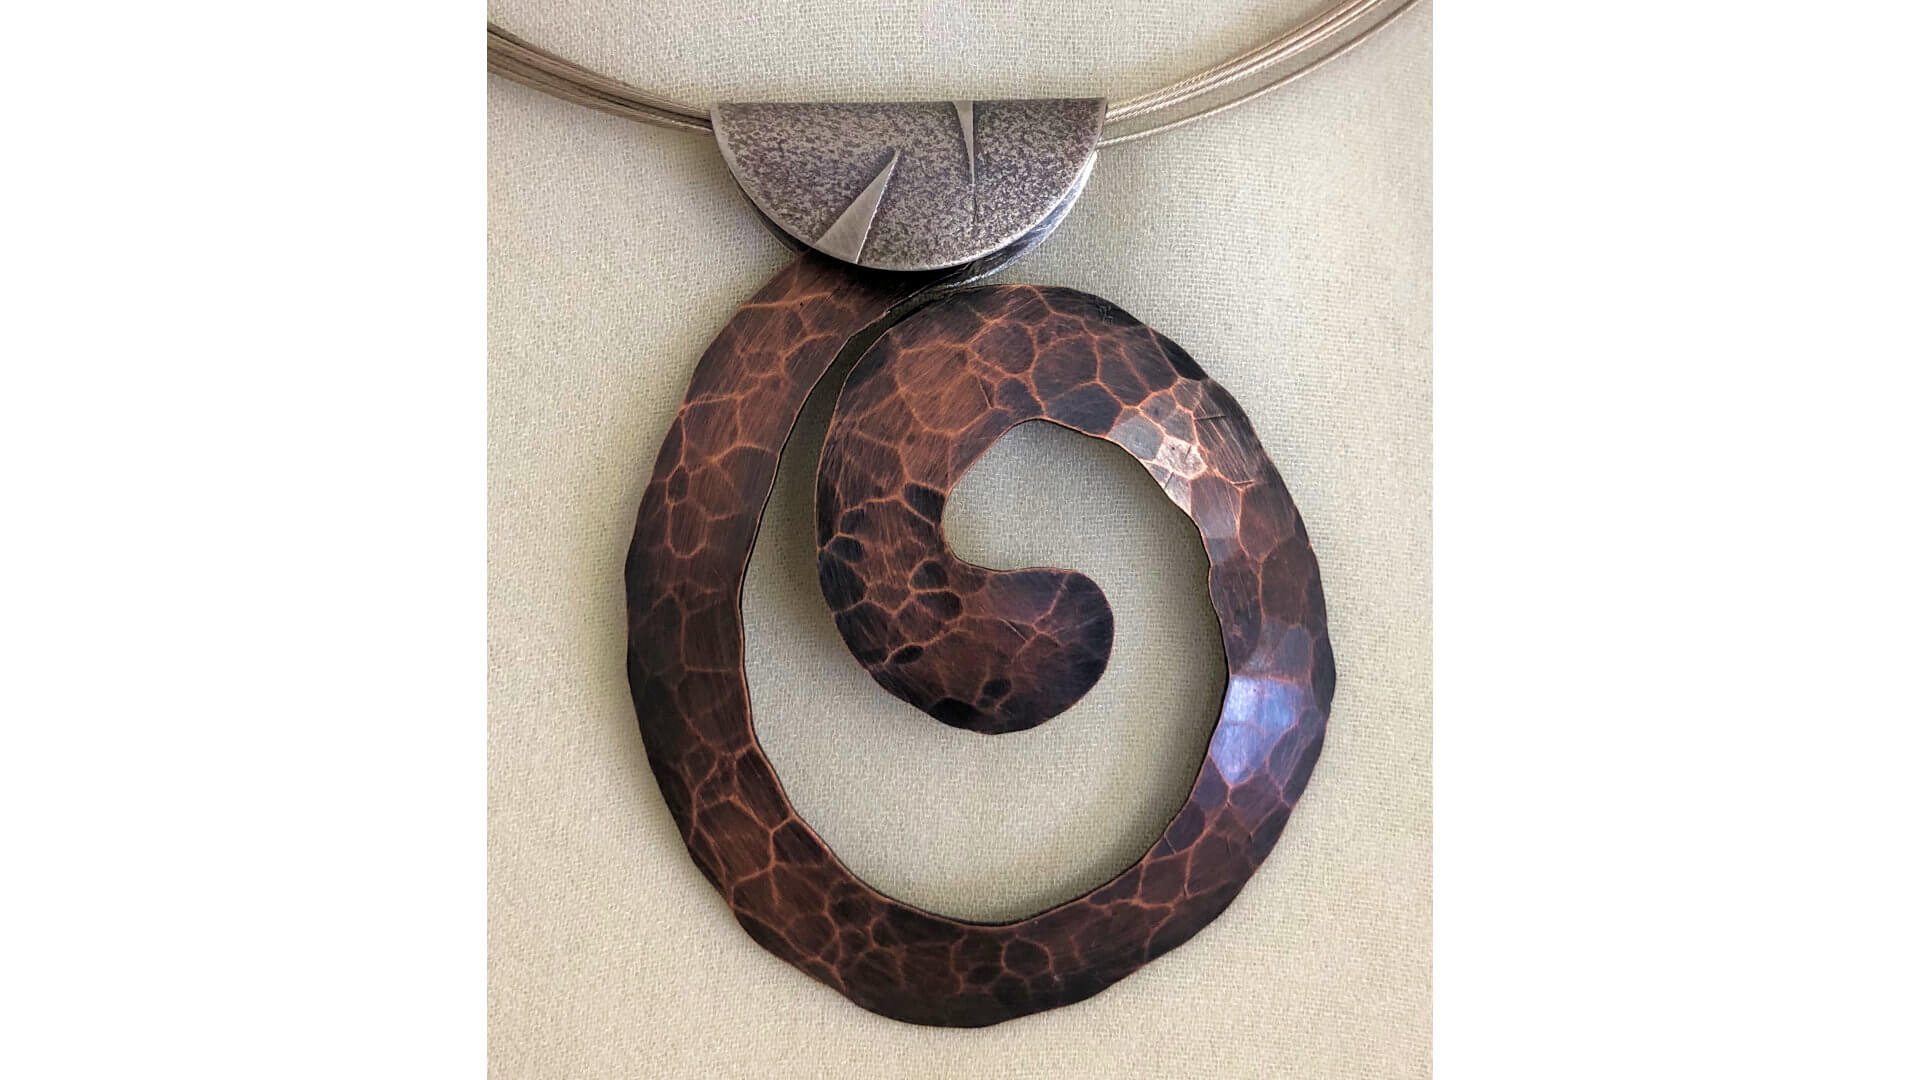 Copper Swirl Pendant by Susan Hazer Designs